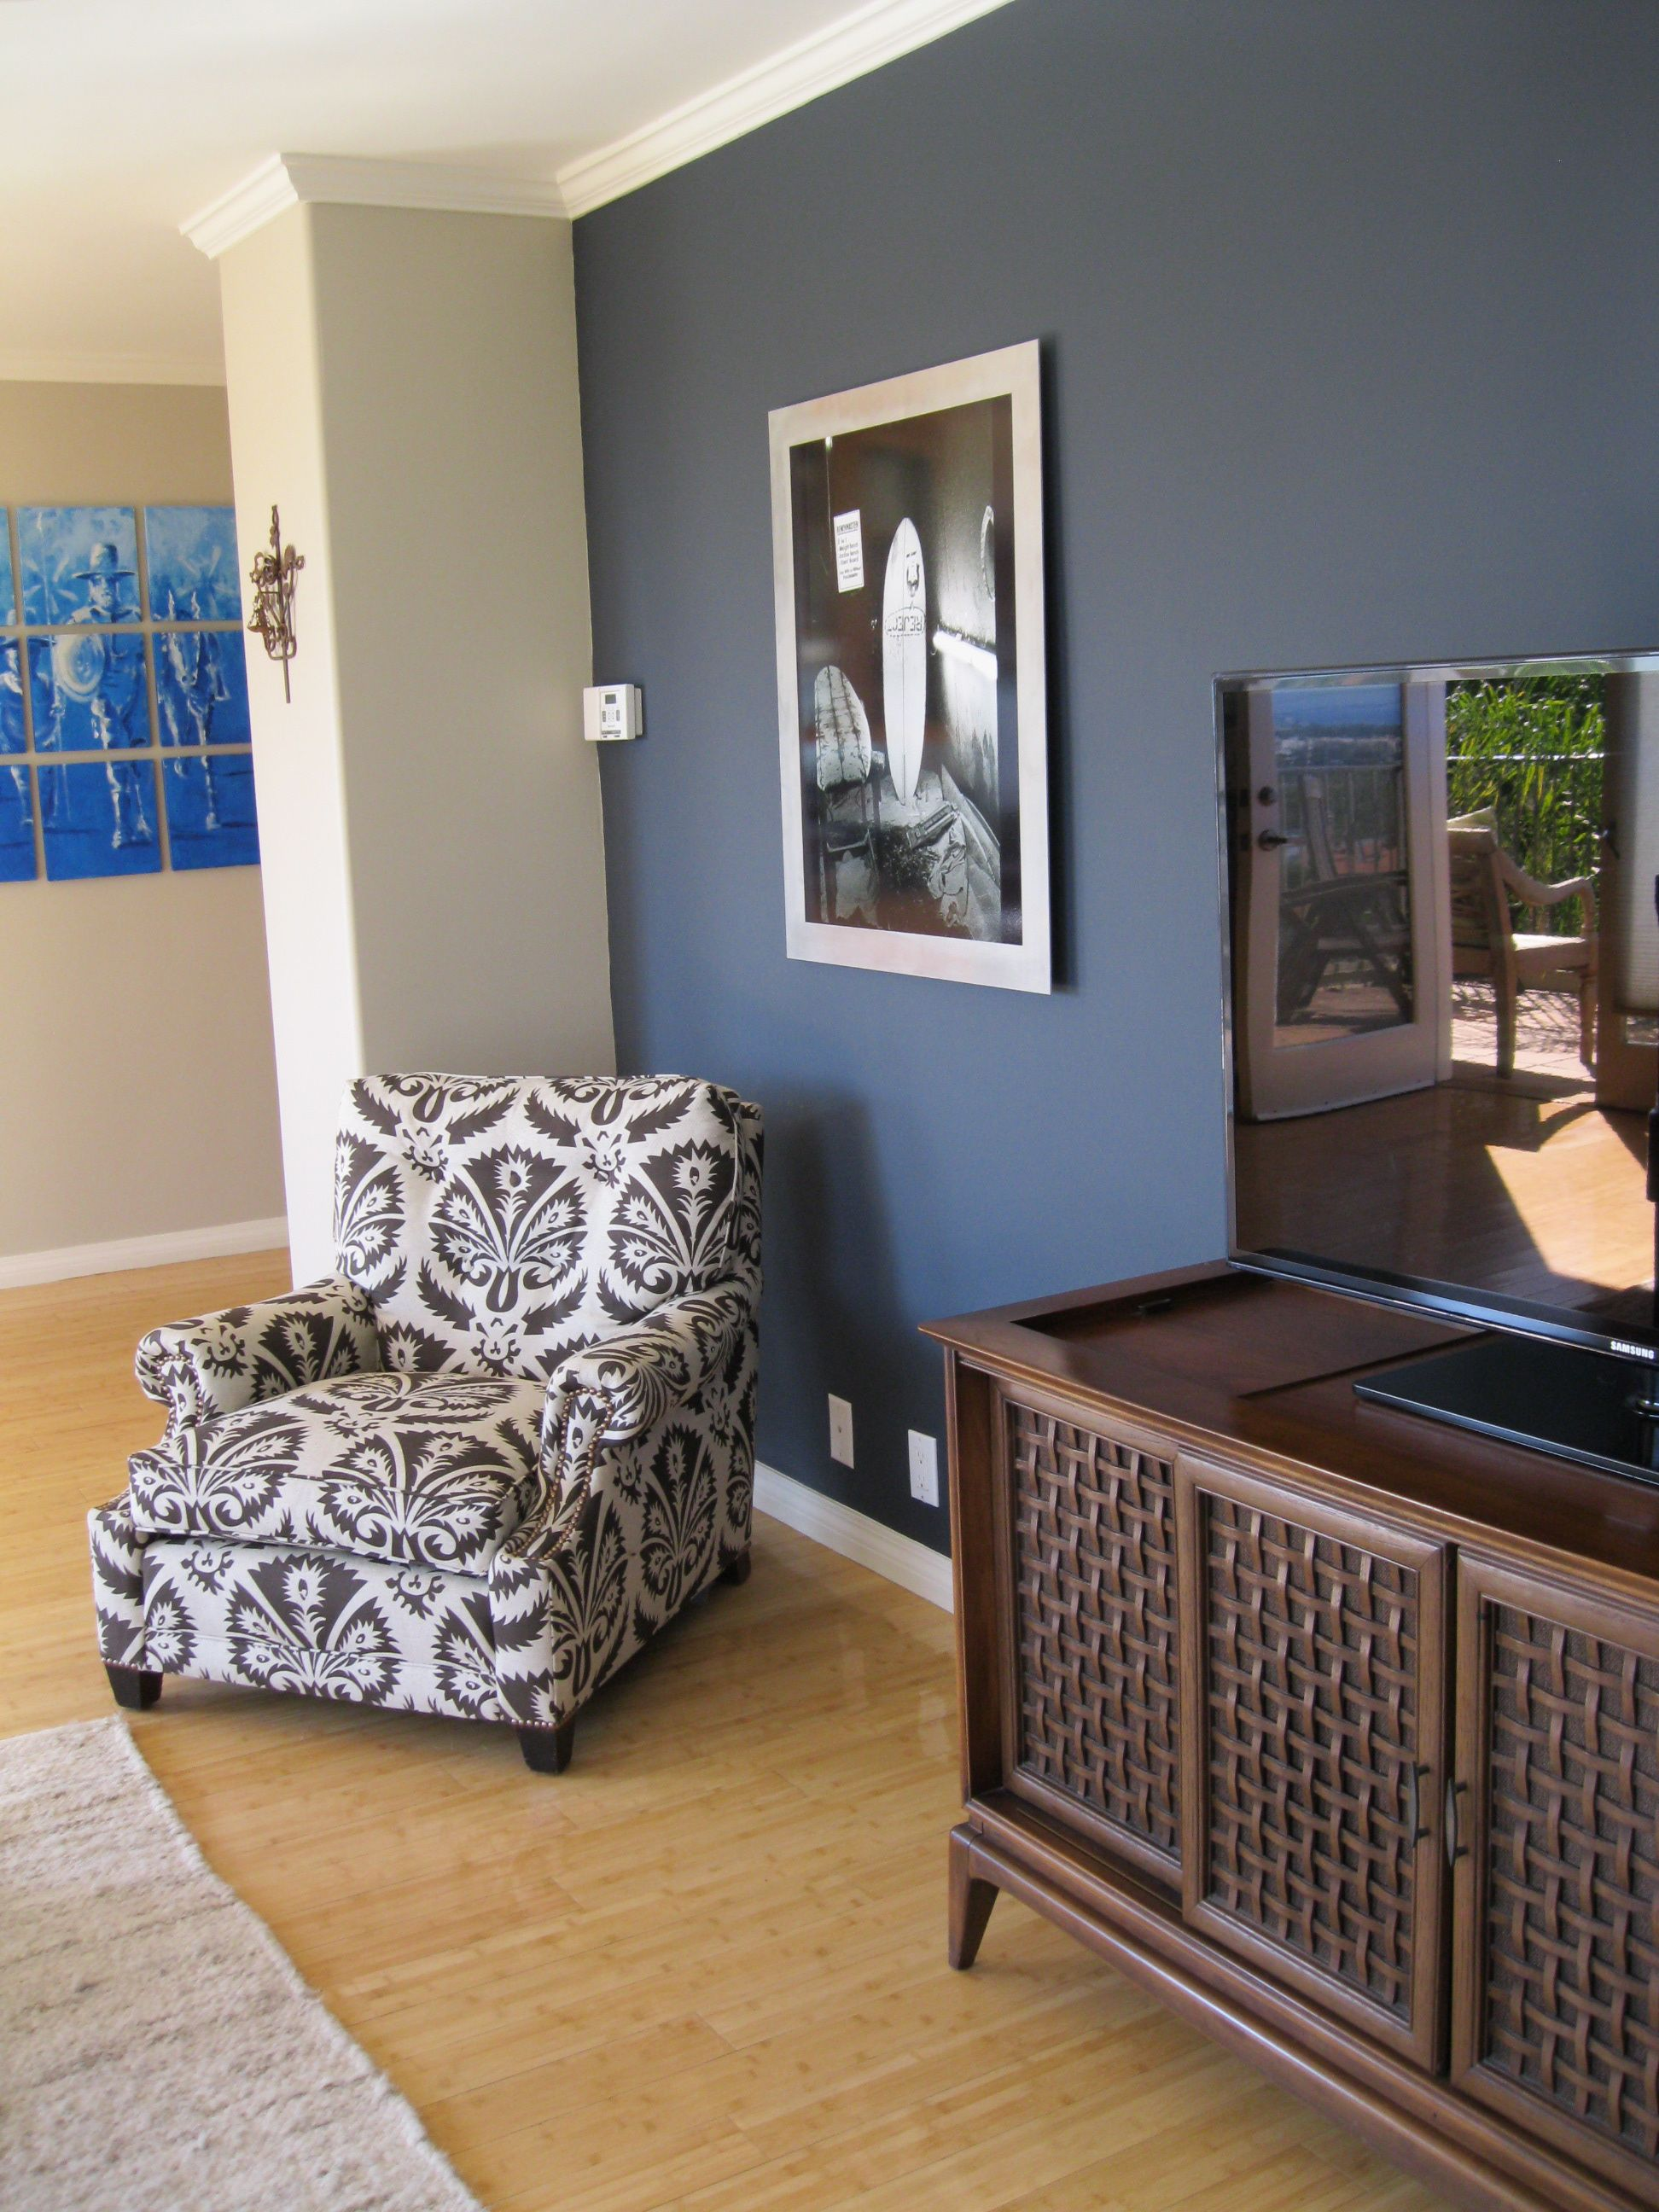 Best Shade Of Blue On Wall Camoflauges Tv Love The Chair Too 400 x 300